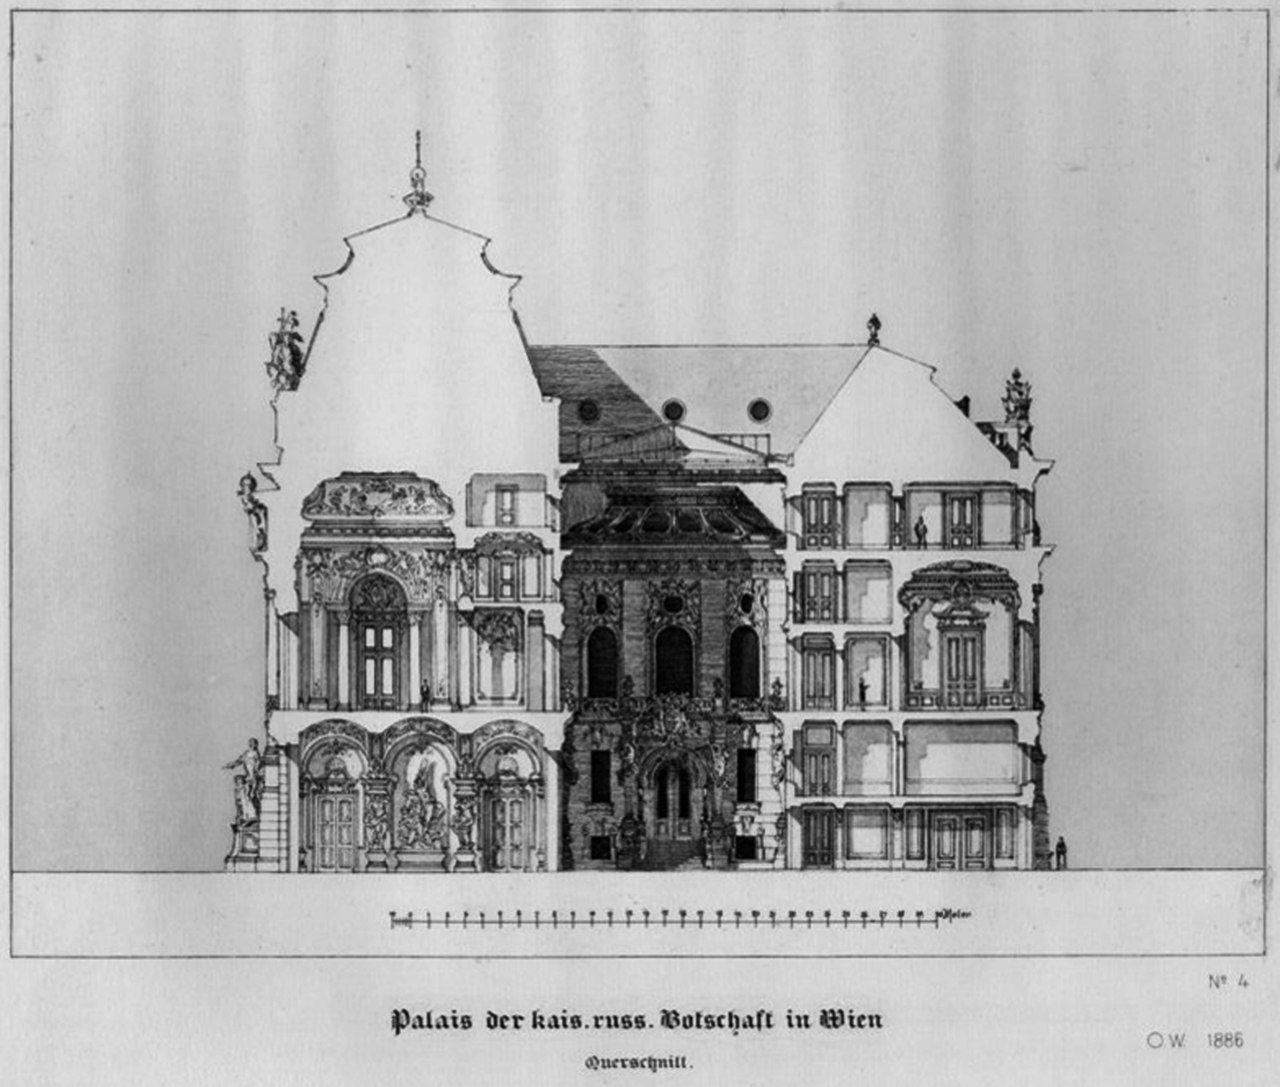 Otto Wagner's 1881 project for the palace of the Russian Imperial Embassy, Vienna